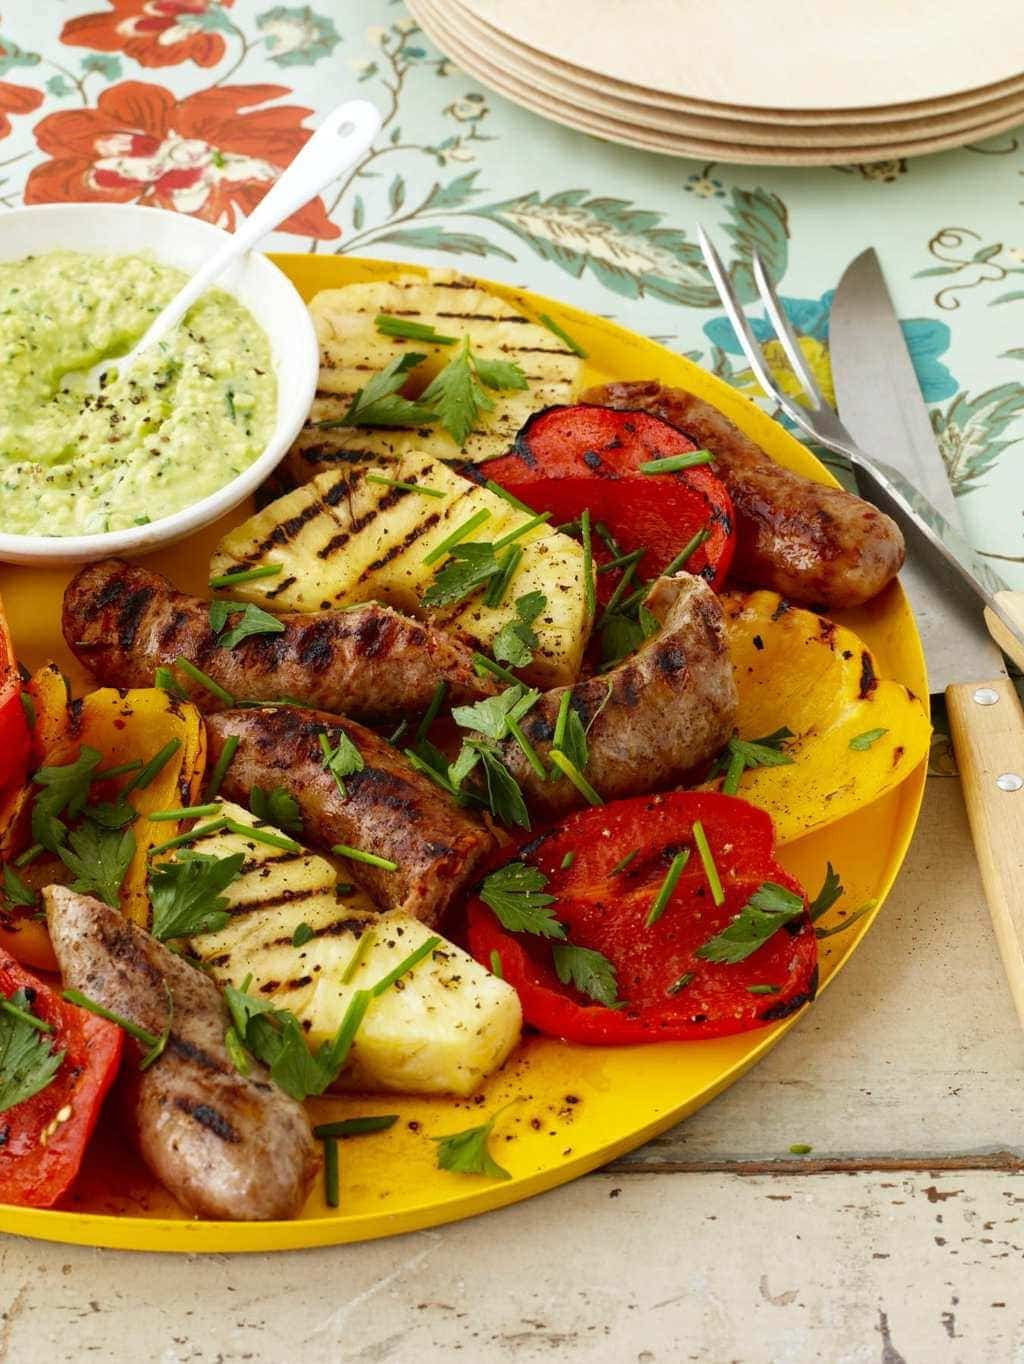 Delicious and easy-to-make sausage dinner recipes for the whole family